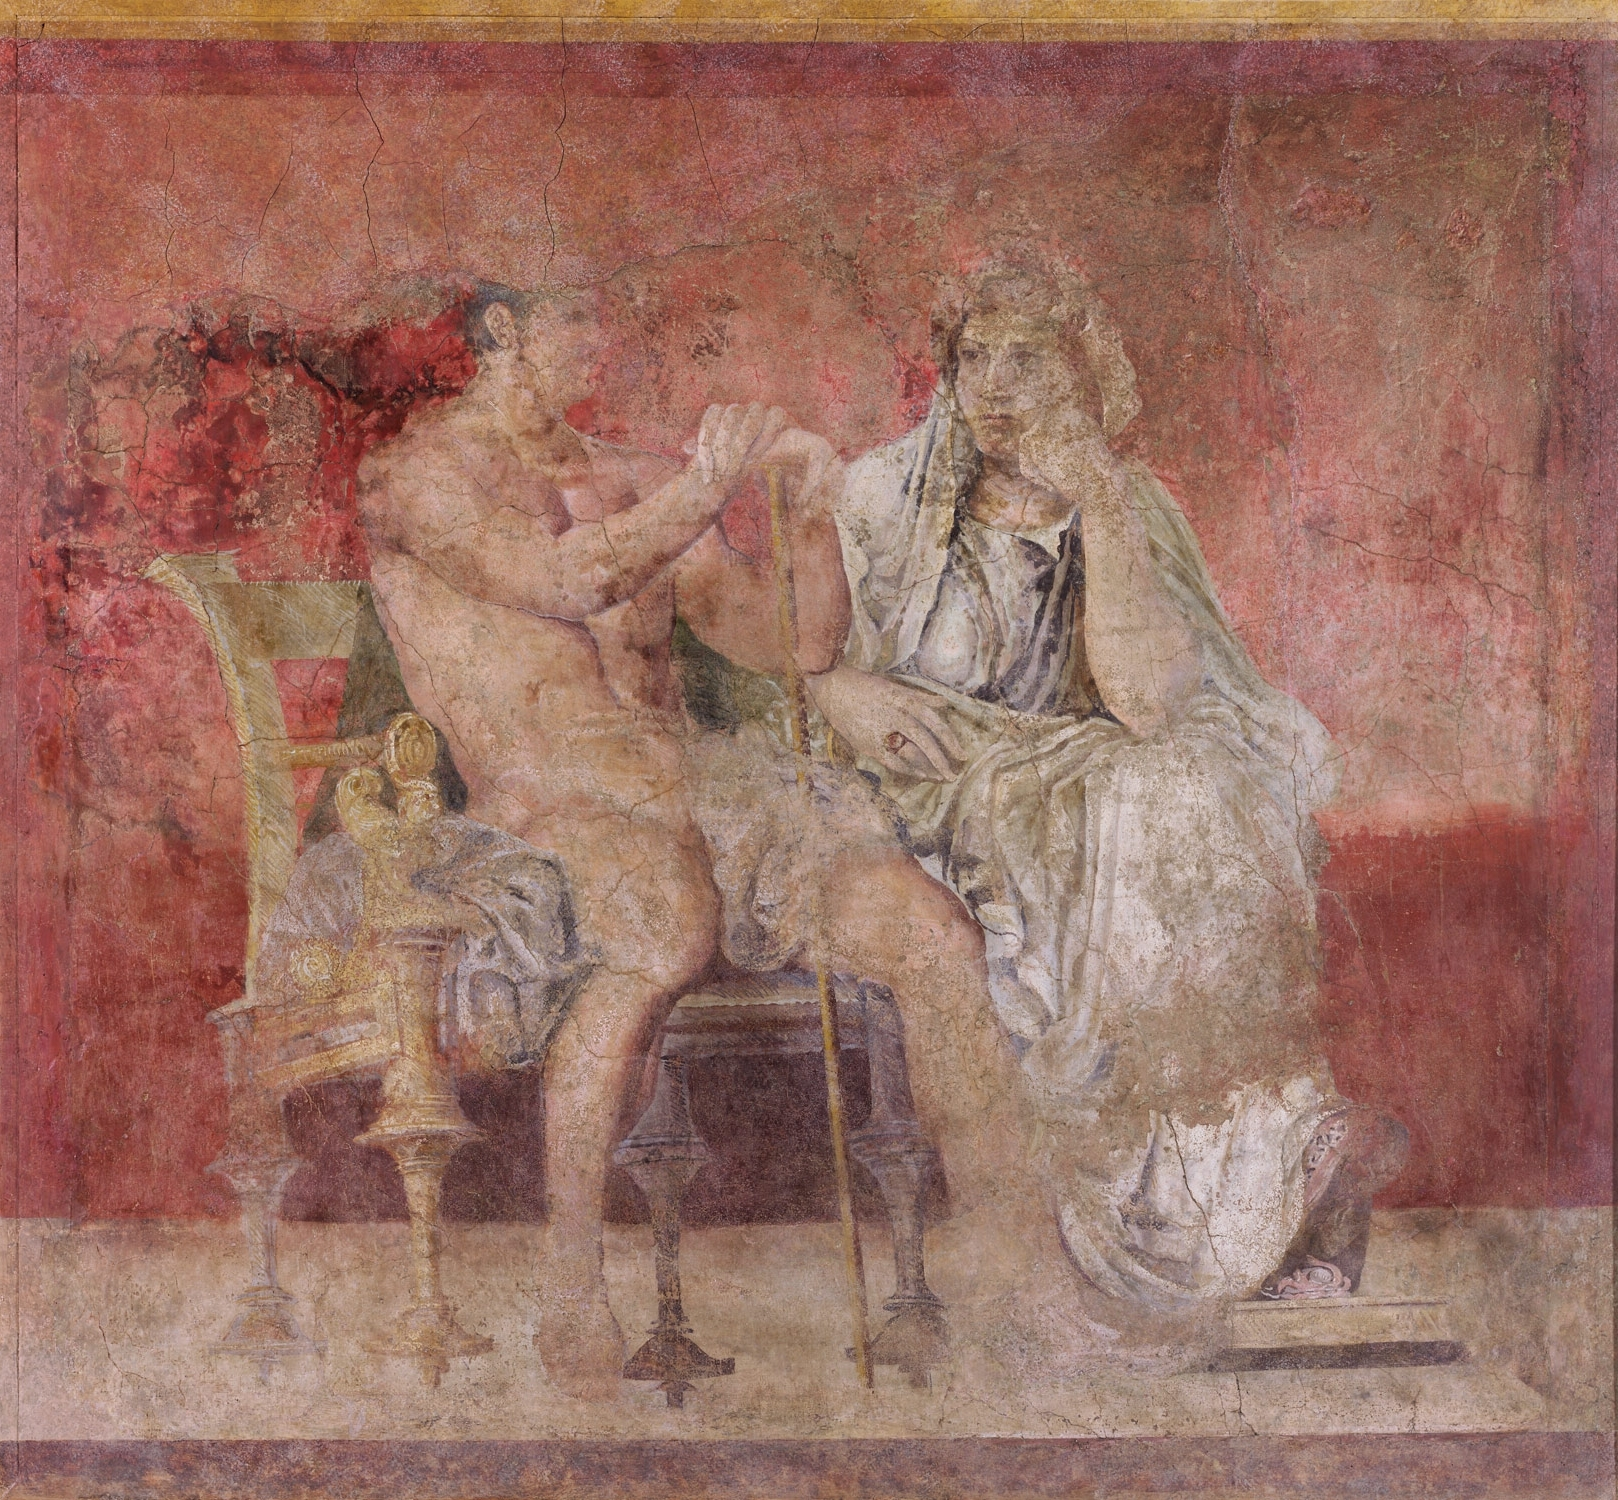 Wall Painting From Room H Of The Villa Of P (View 13 of 15)